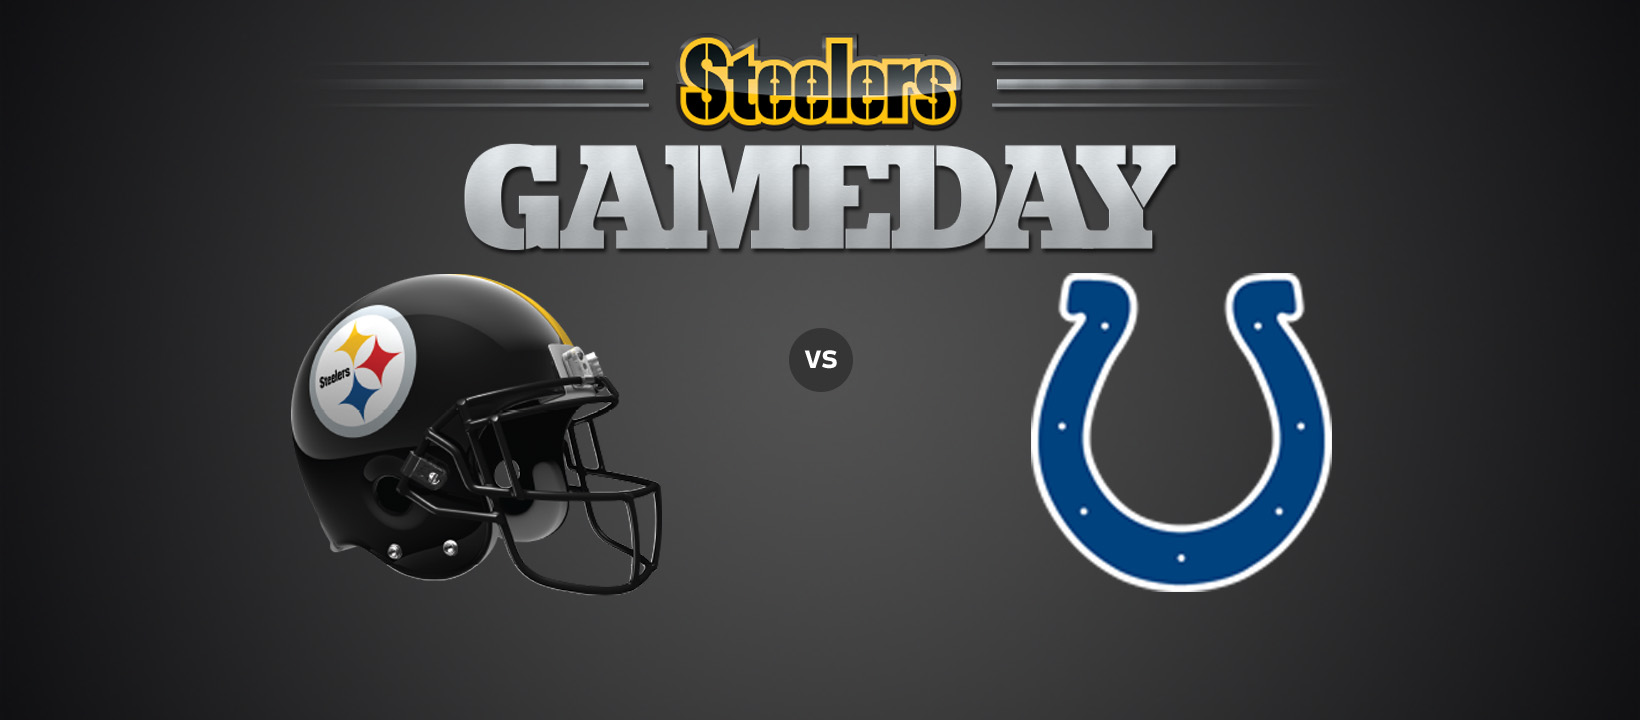 2019 Steelers vs Colts